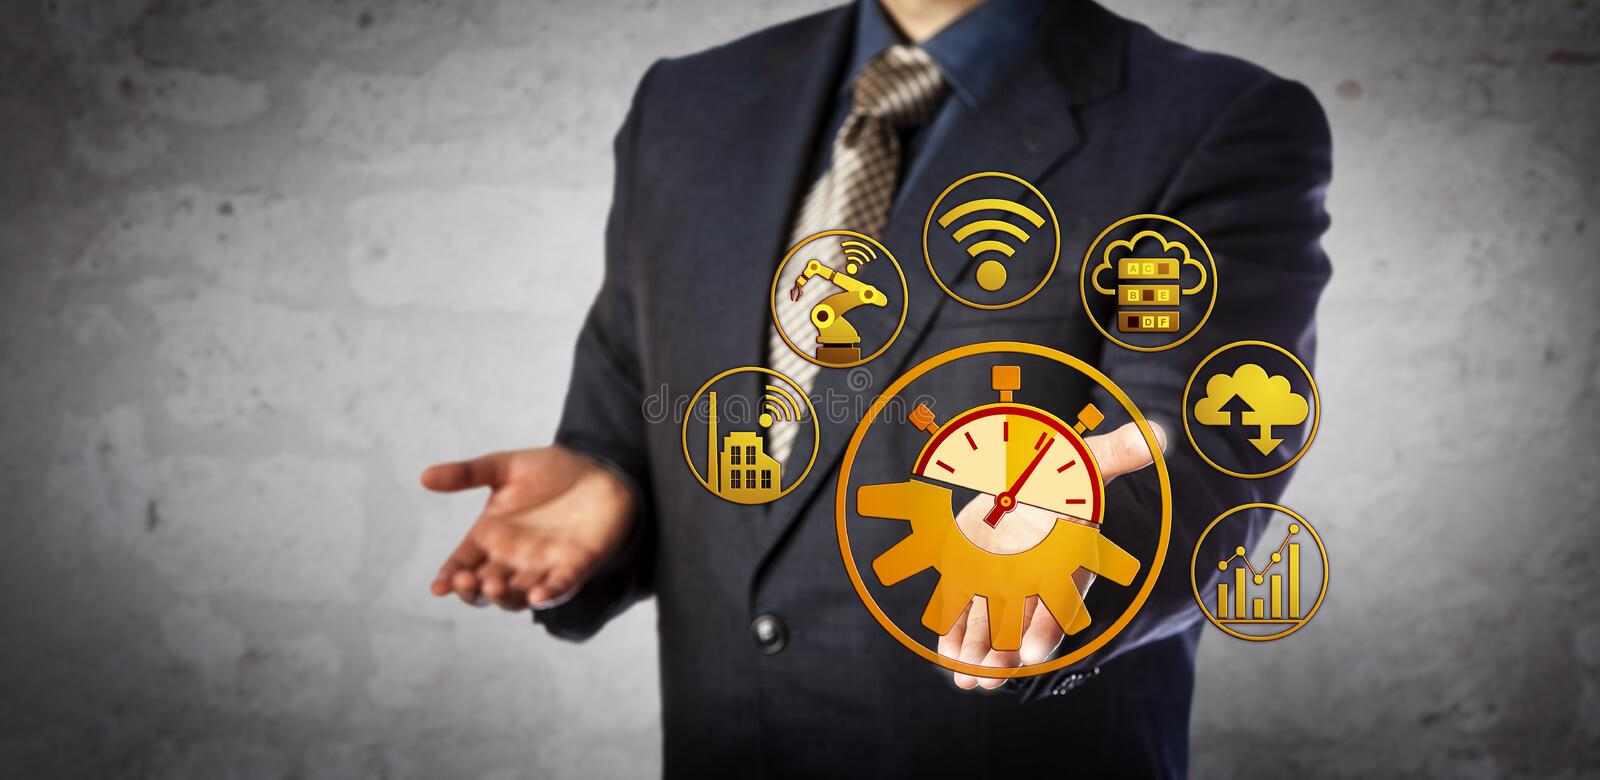 Blue Chip Manager Offers Real Time Manufacturing. Blue chip manager offers real time interoperability solution. Concept for cyber physical systems, 4th stock image